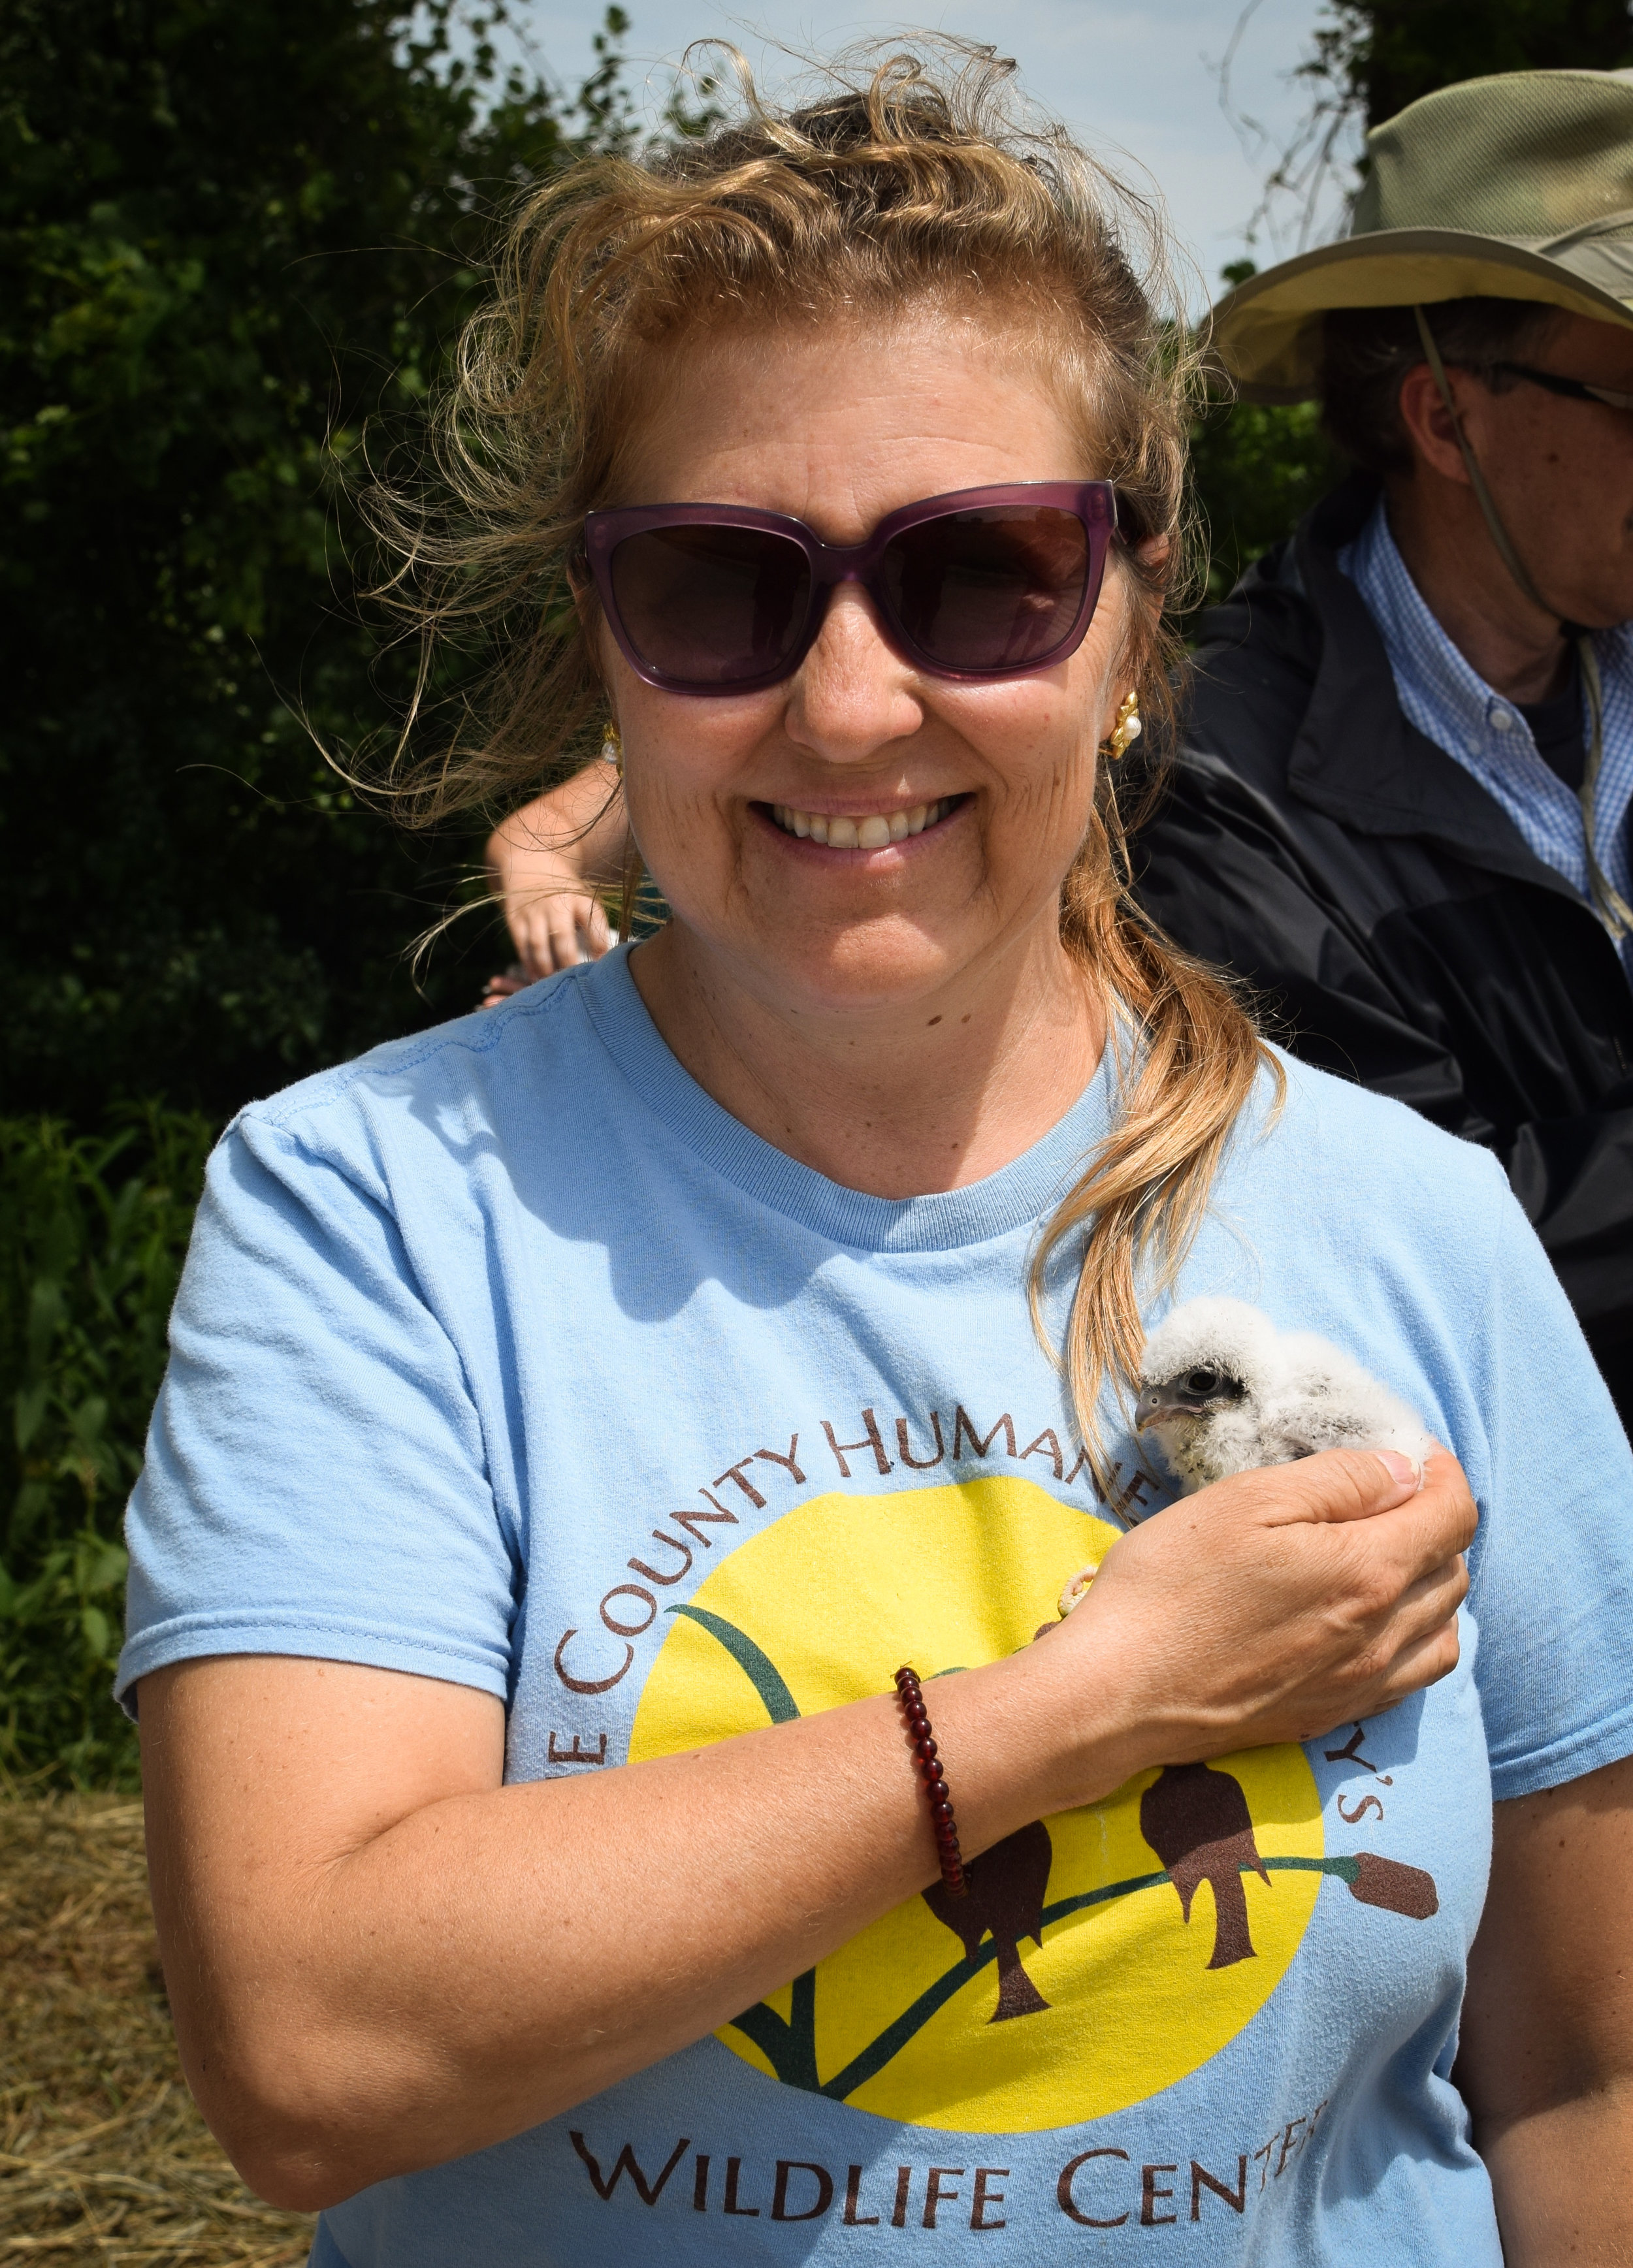 Volunteer Stacy Taritas served as a caregiver for the orphaned chicks and as the liaison between the Dane County Humane Society's Wildlife Center, Madison Audubon Society, and Central Wisconsin Kestrel Research program. Photo provided by Stacy Taritas. June 15, 2018